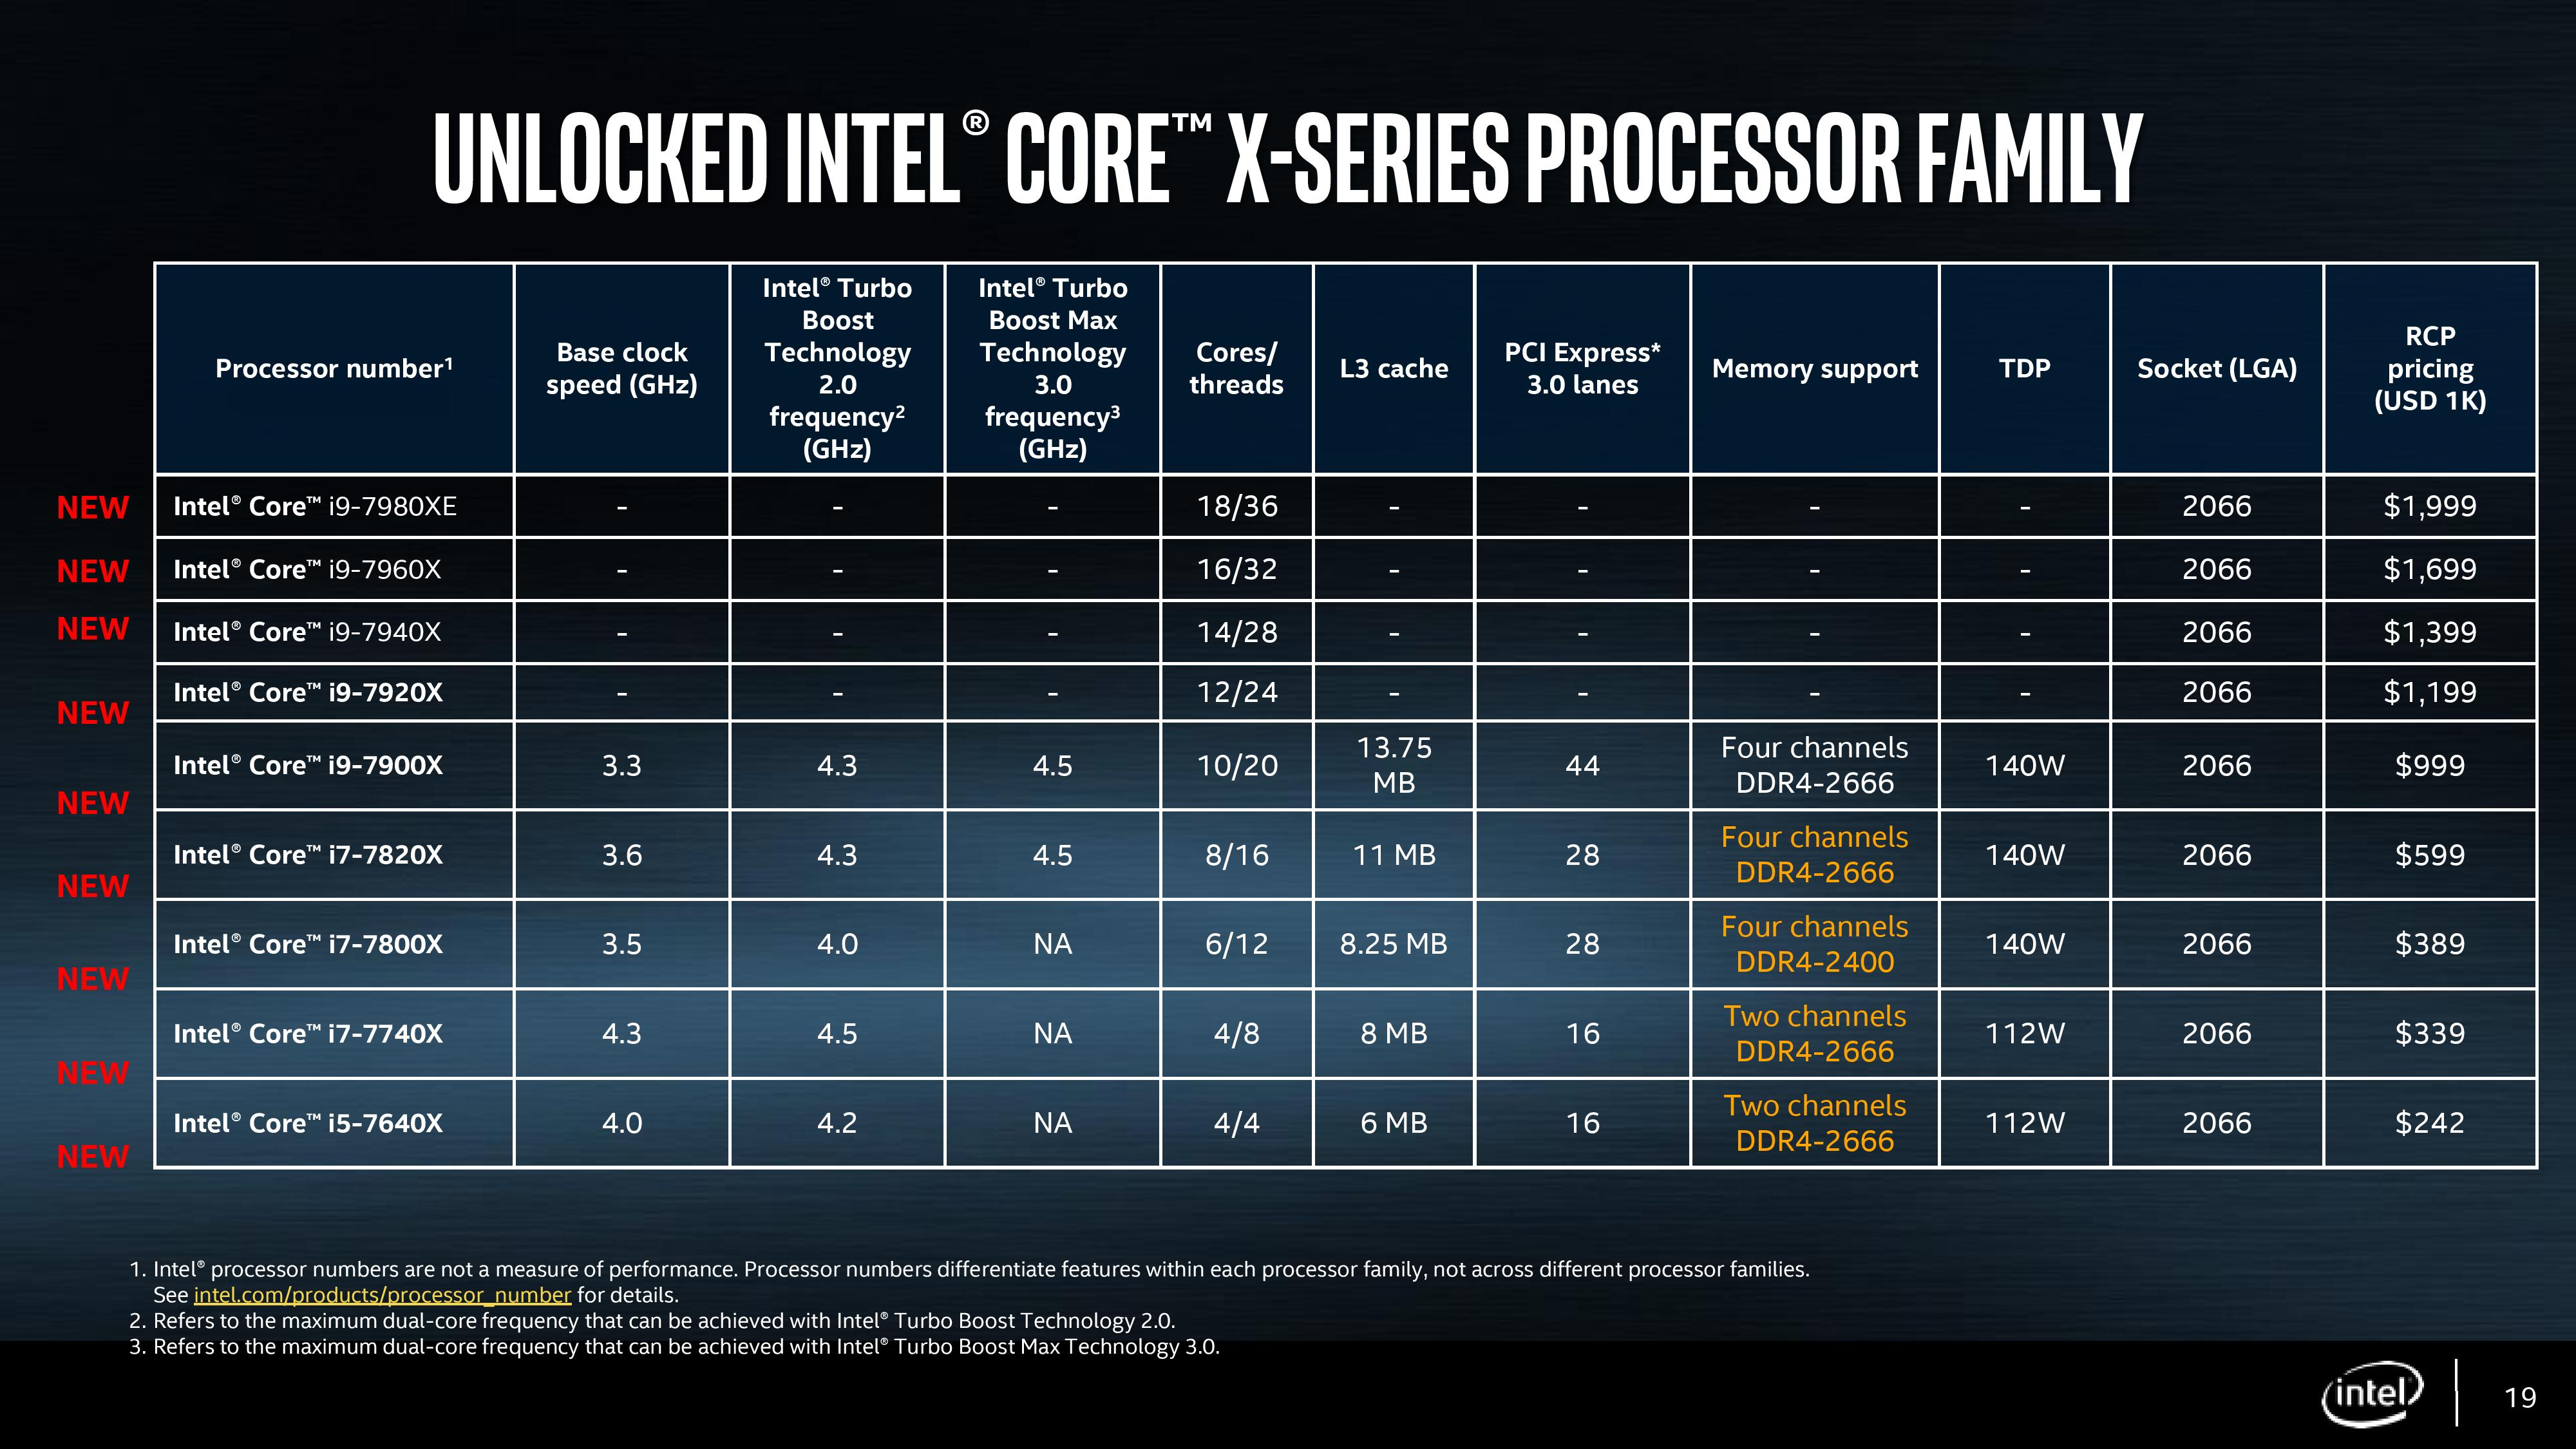 https://images.anandtech.com/doci/11542/intel_core_x-series_processor_family_near_final-page-019.jpg